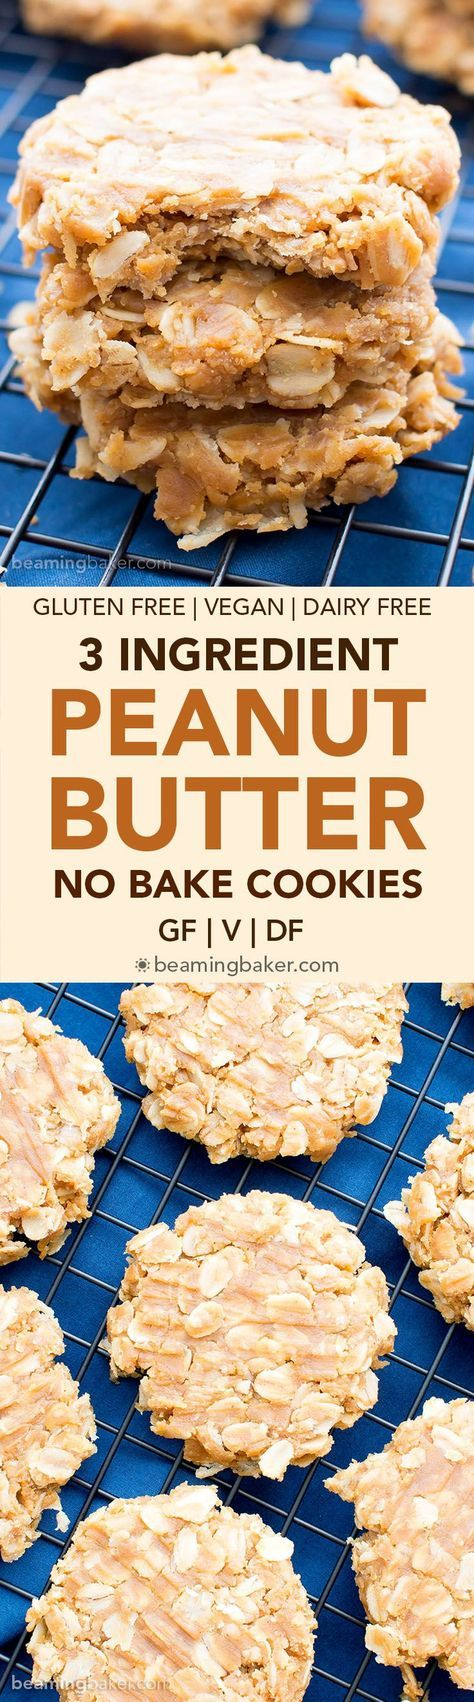 3 Ingredient No Bake Peanut Butter Oatmeal Cookies (V, GF, DF): a one bowl recipe for deliciously soft and chewy peanut butter cookies bursting with oats.